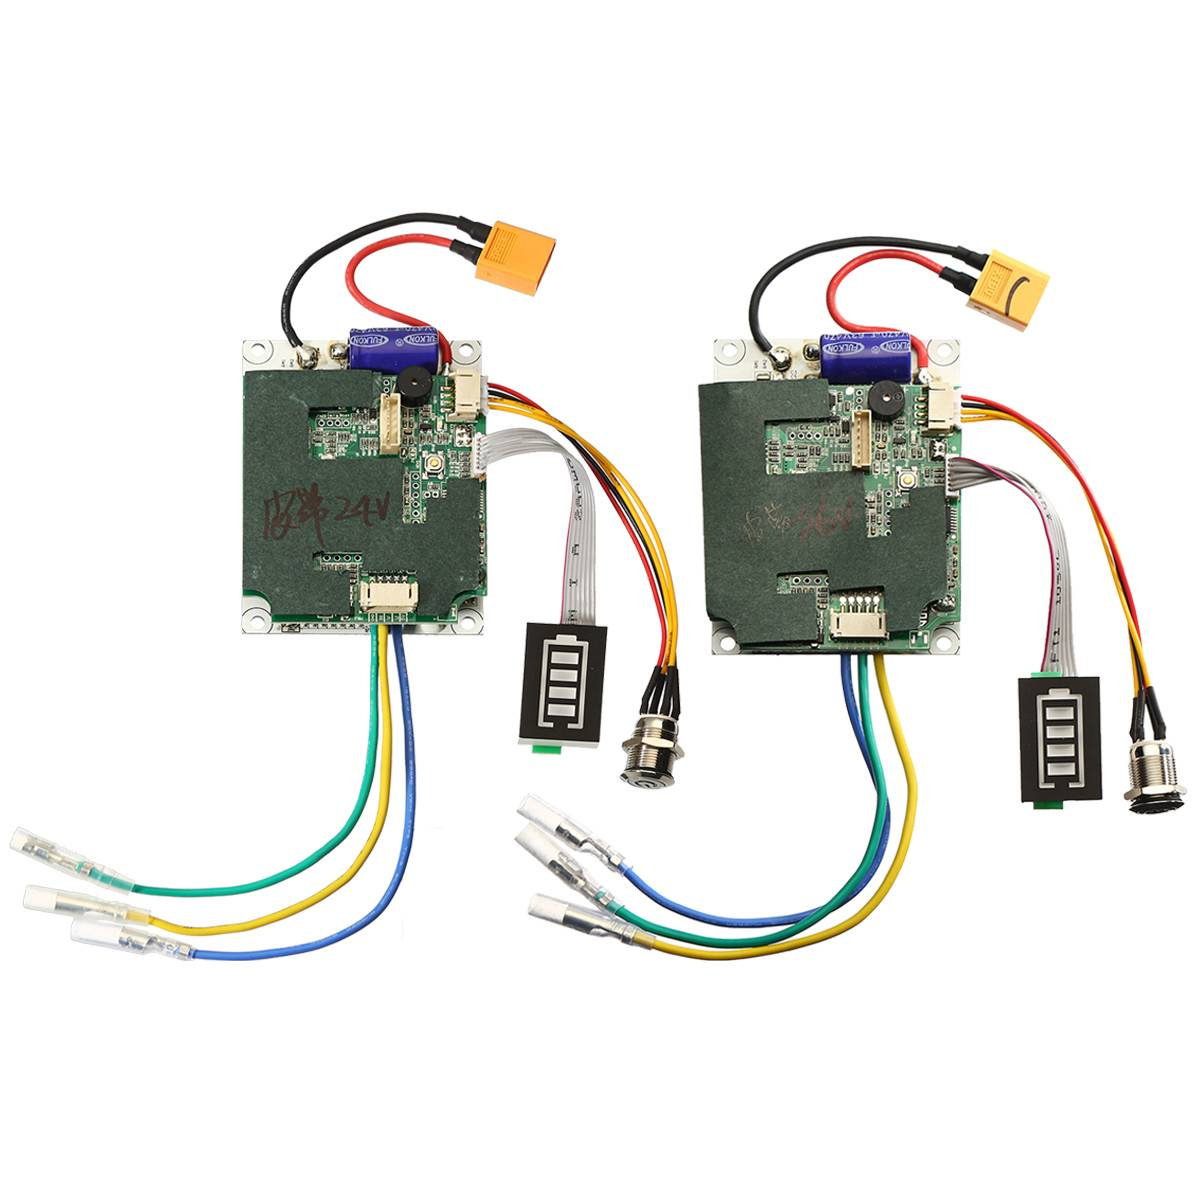 24/36V Single Belt Motor Electric Skateboard Controller Longboard ESC Substitute Parts Scooter Mainboard Instrument Tools 34